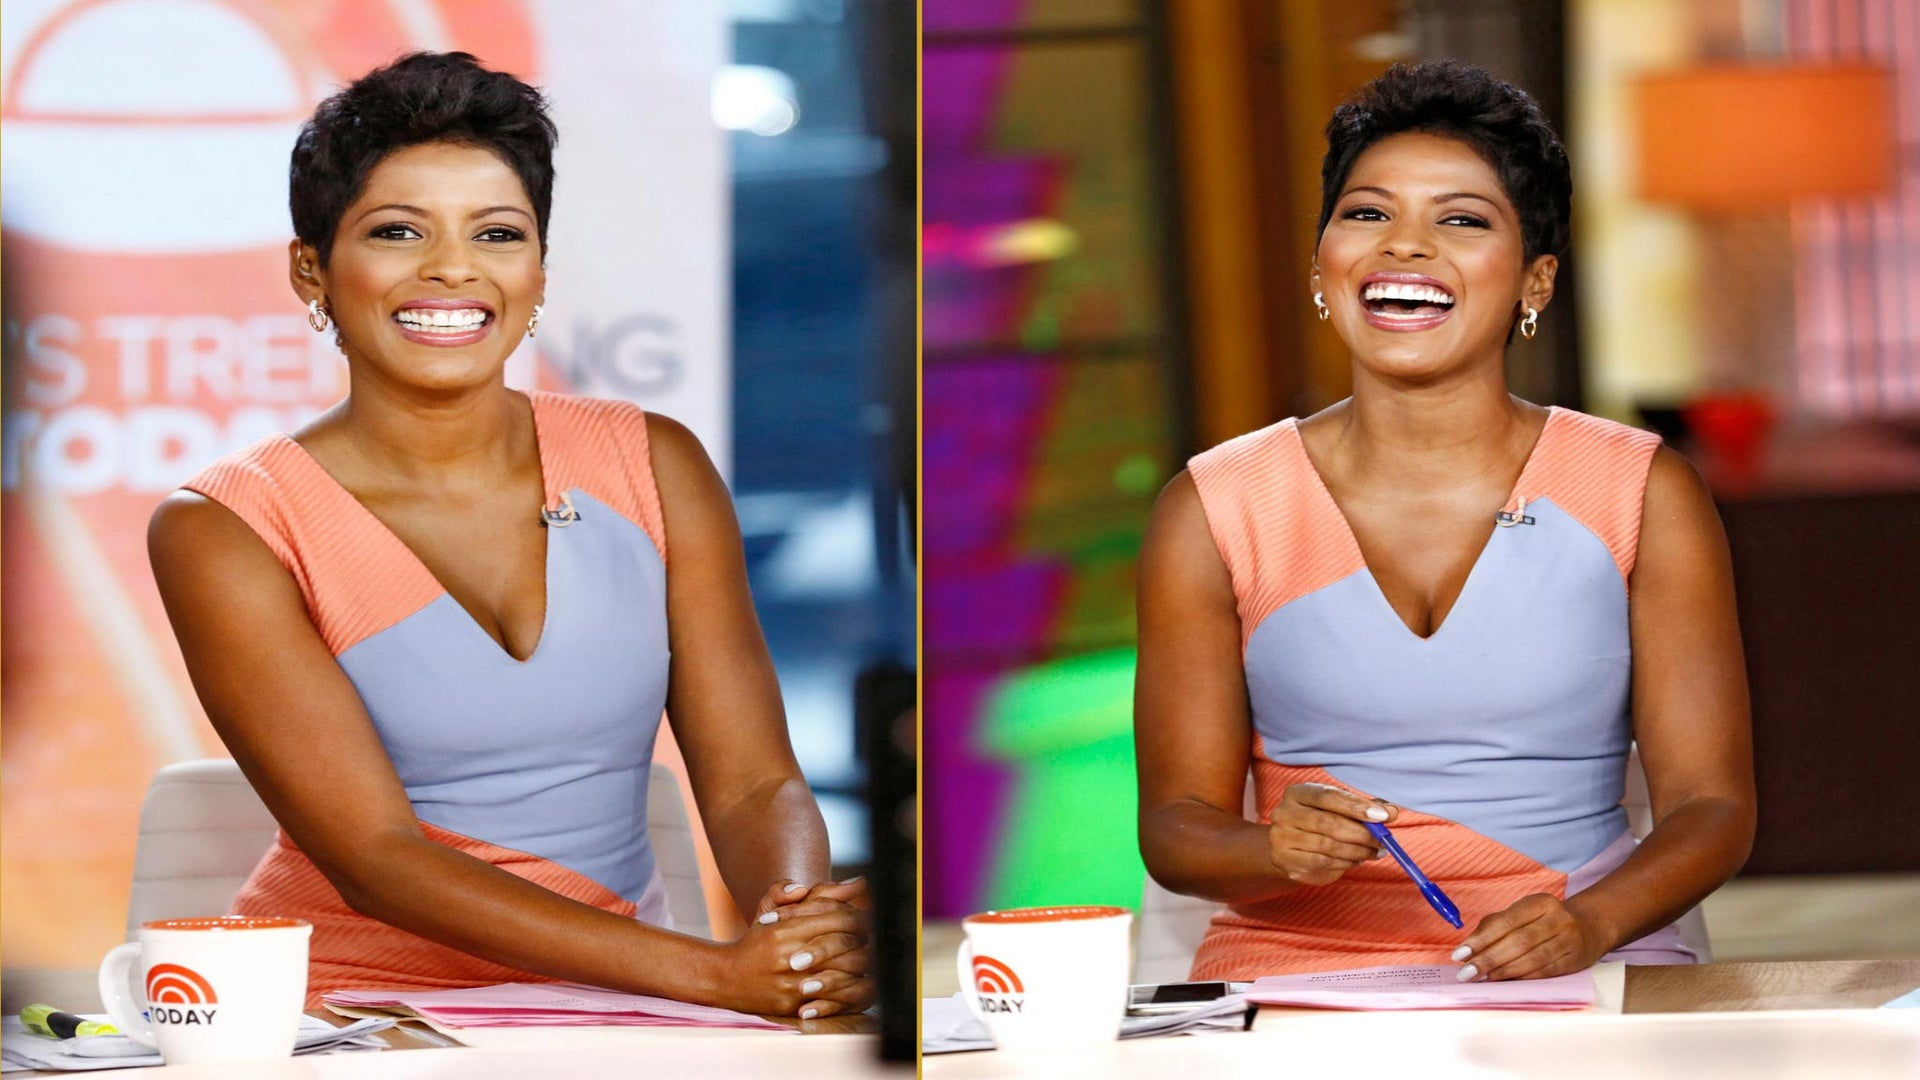 Tamron Hall Opened Up About The Challenges Of Finding Love In Interview Taped Prior To Today Show Exit